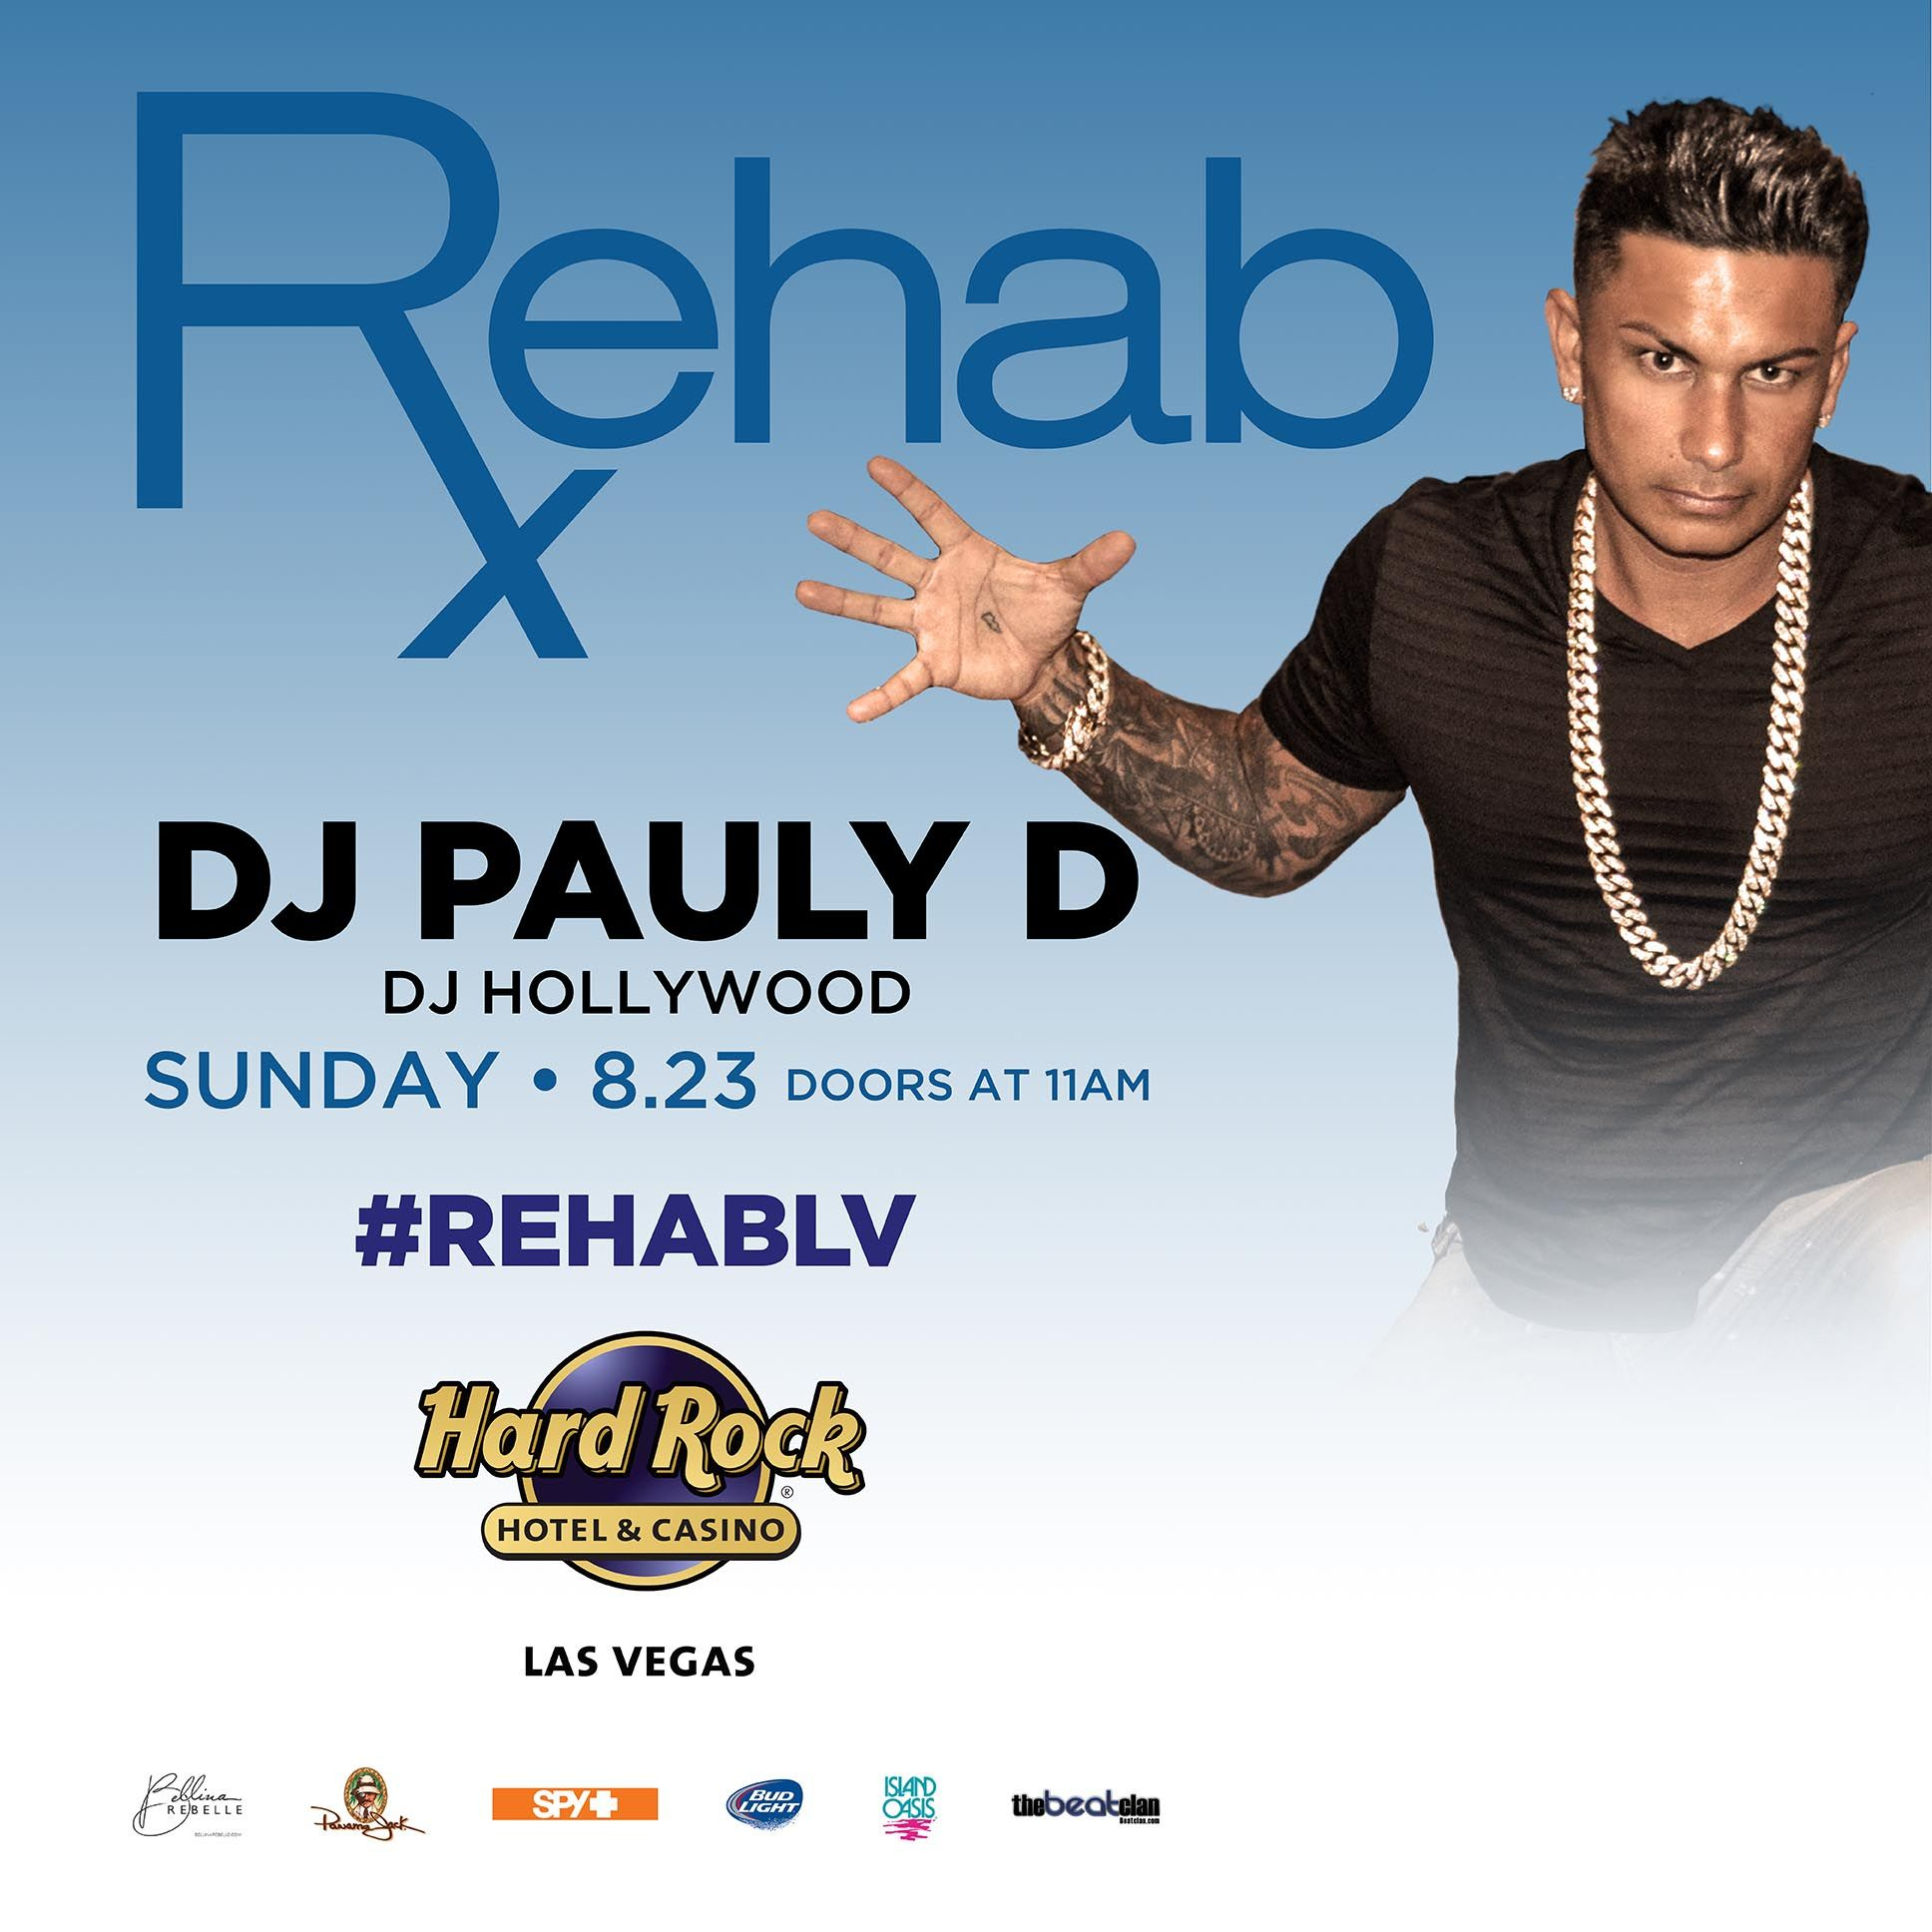 How To Get Into Rehab Las Vegas For Free